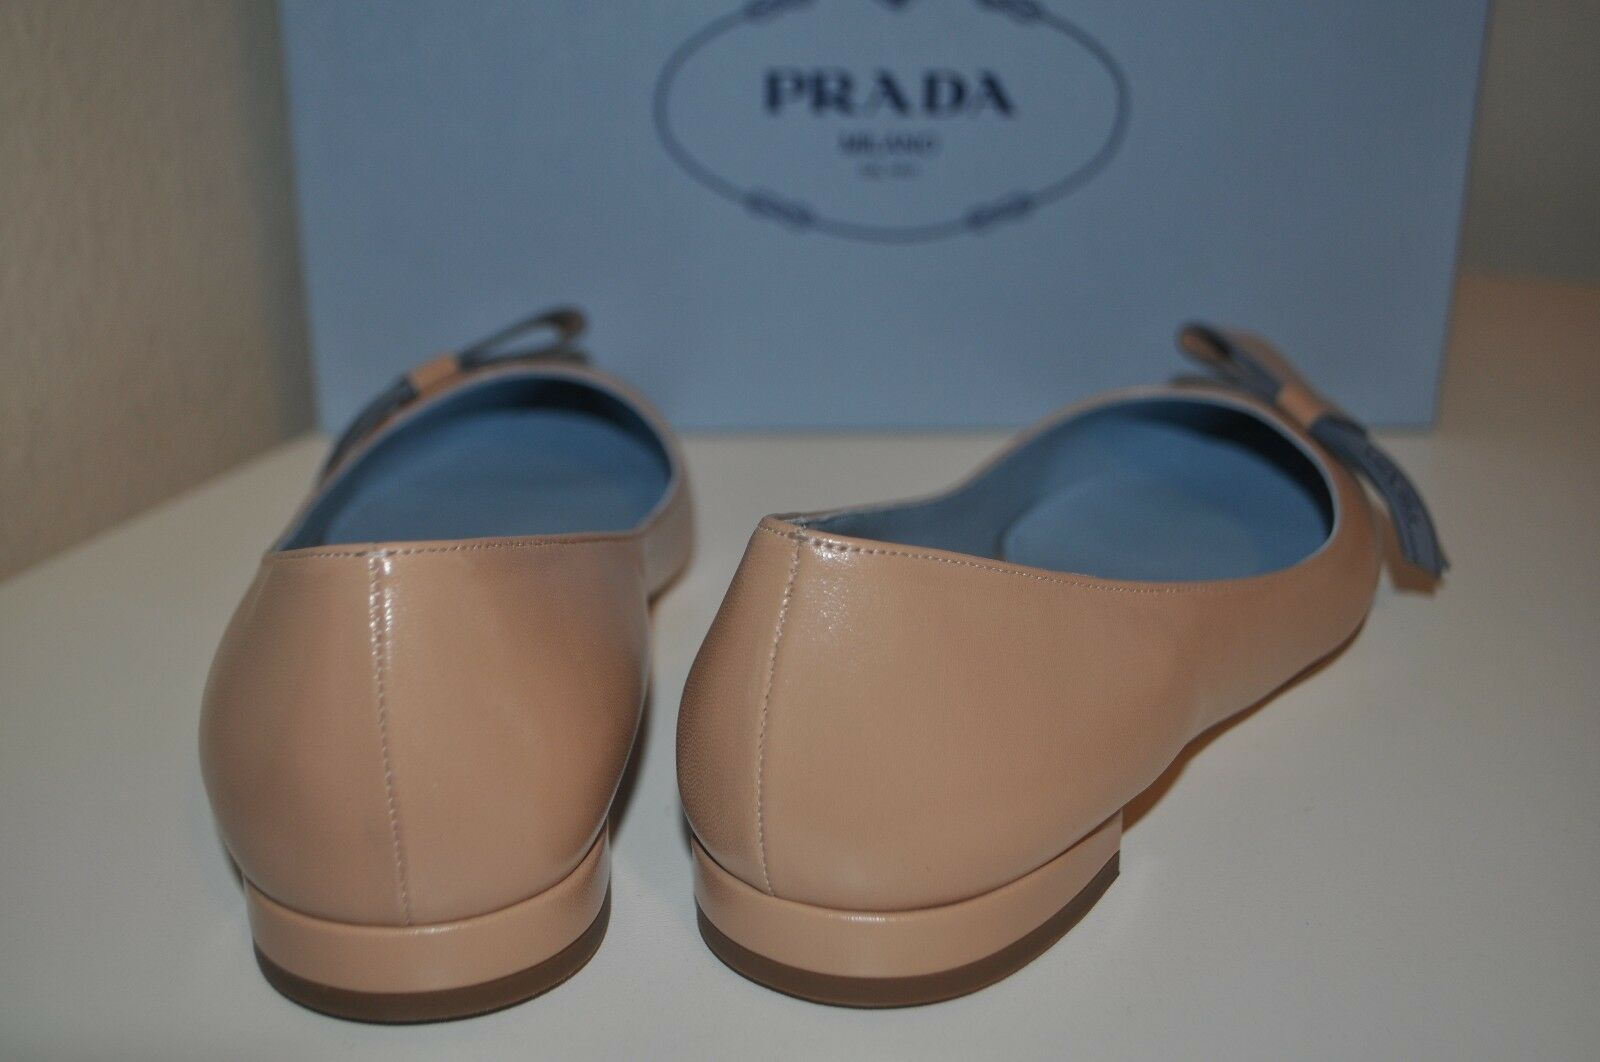 NIB  710+ PRADA Logo Bow Nude Nude Nude Leather Skimmer Pointy Toe Flat shoes 36.5 - 6 US 1214b3